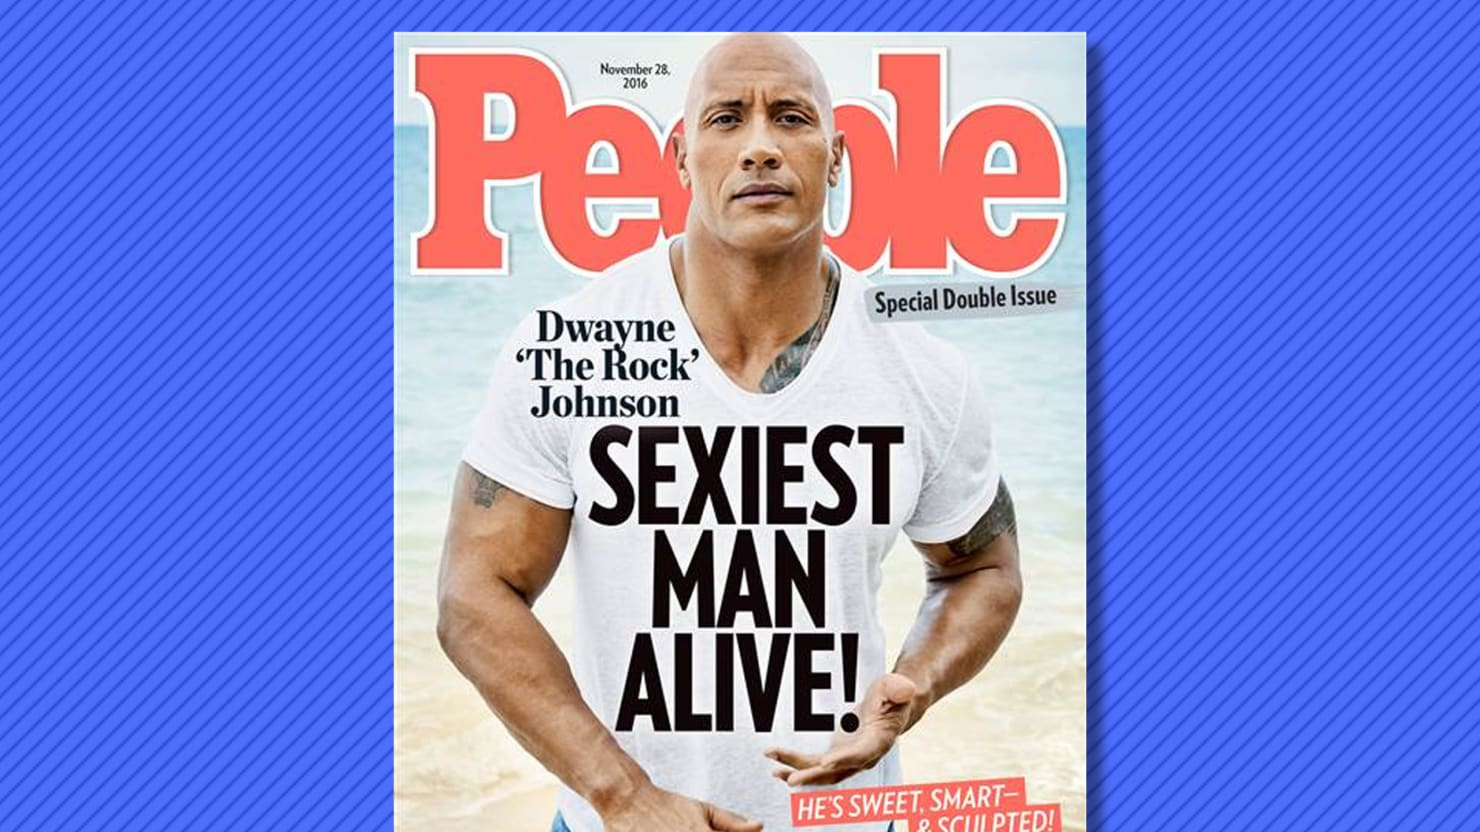 Fine Line Auto >> Trump's Win Encourages The Rock to Run for President ...